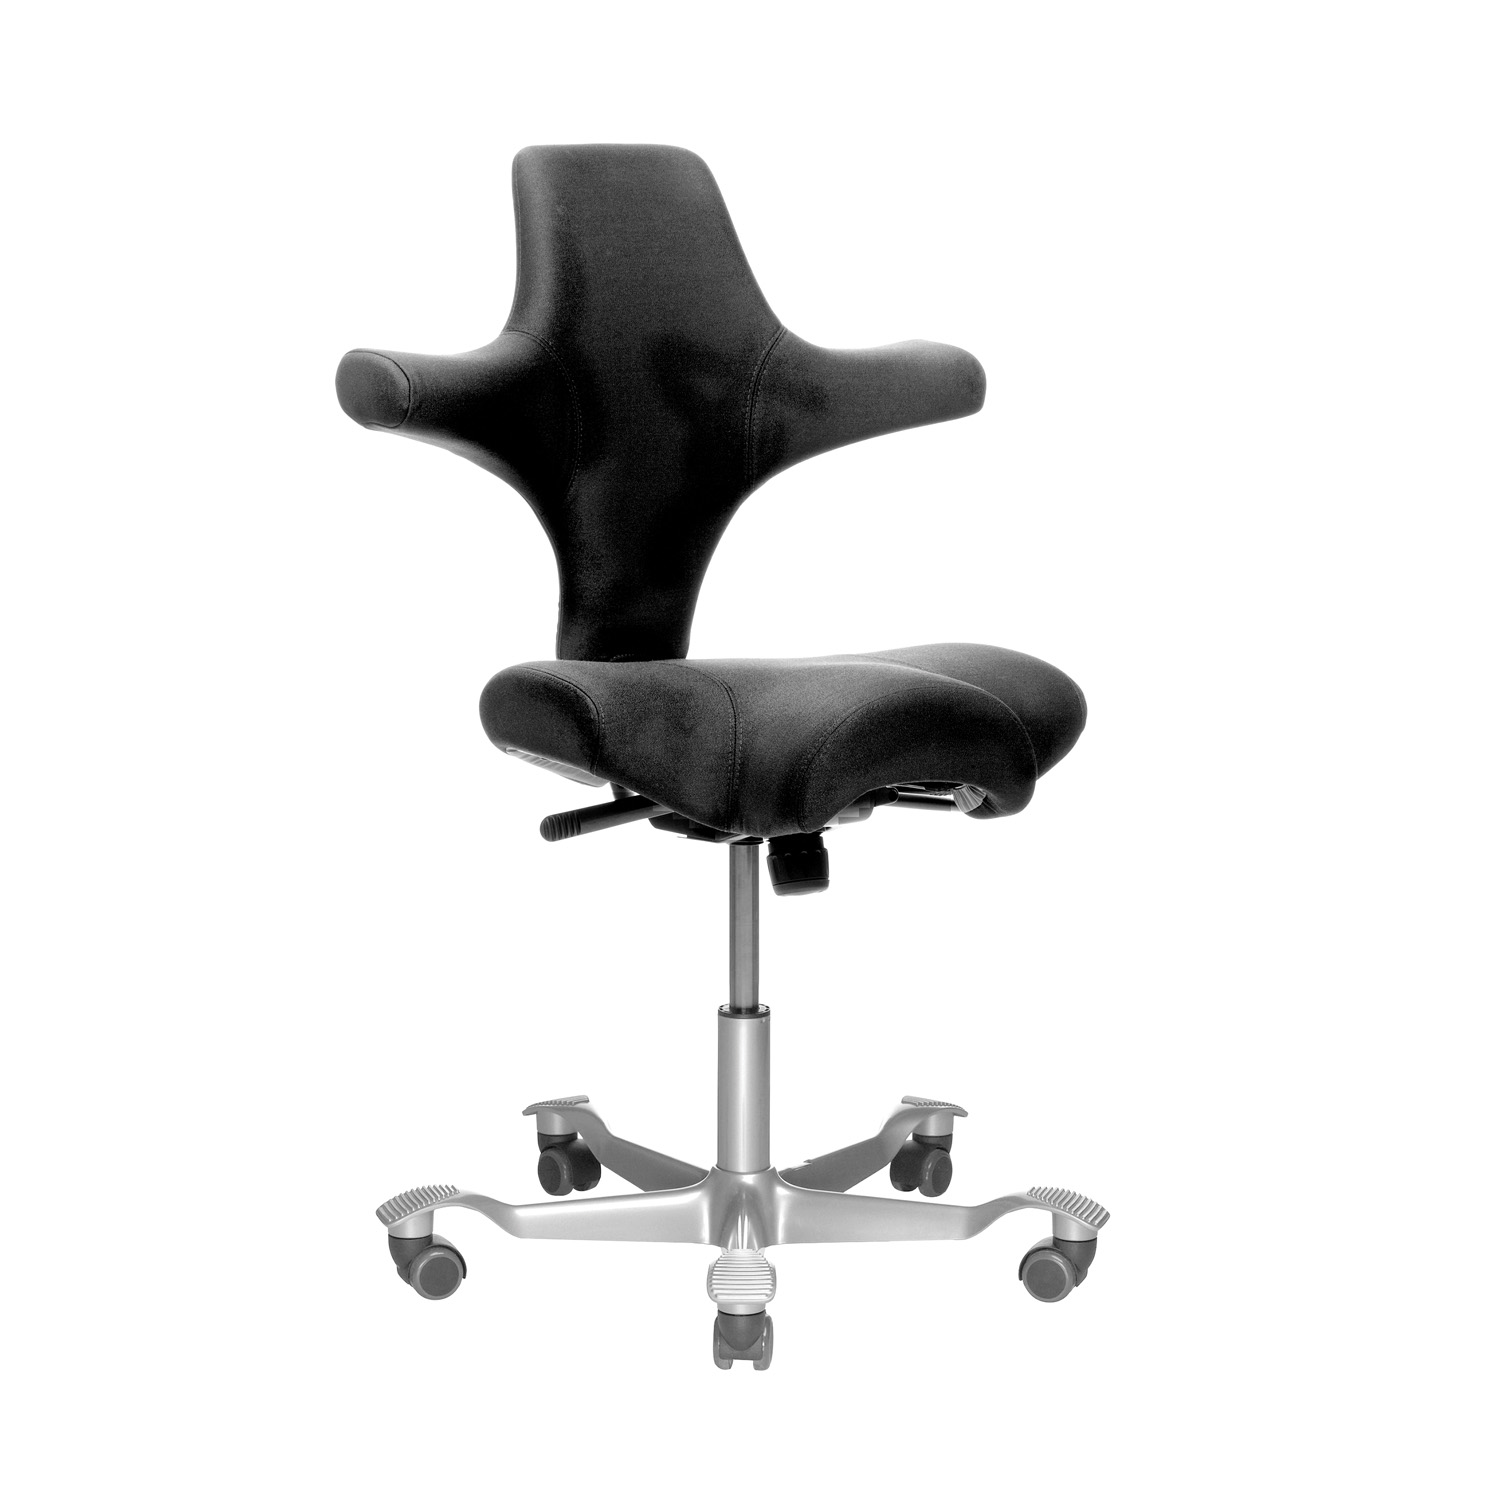 Capisco Chair Ergocentric HÅg Capisco Chair Saddle Seat Grand And Toy